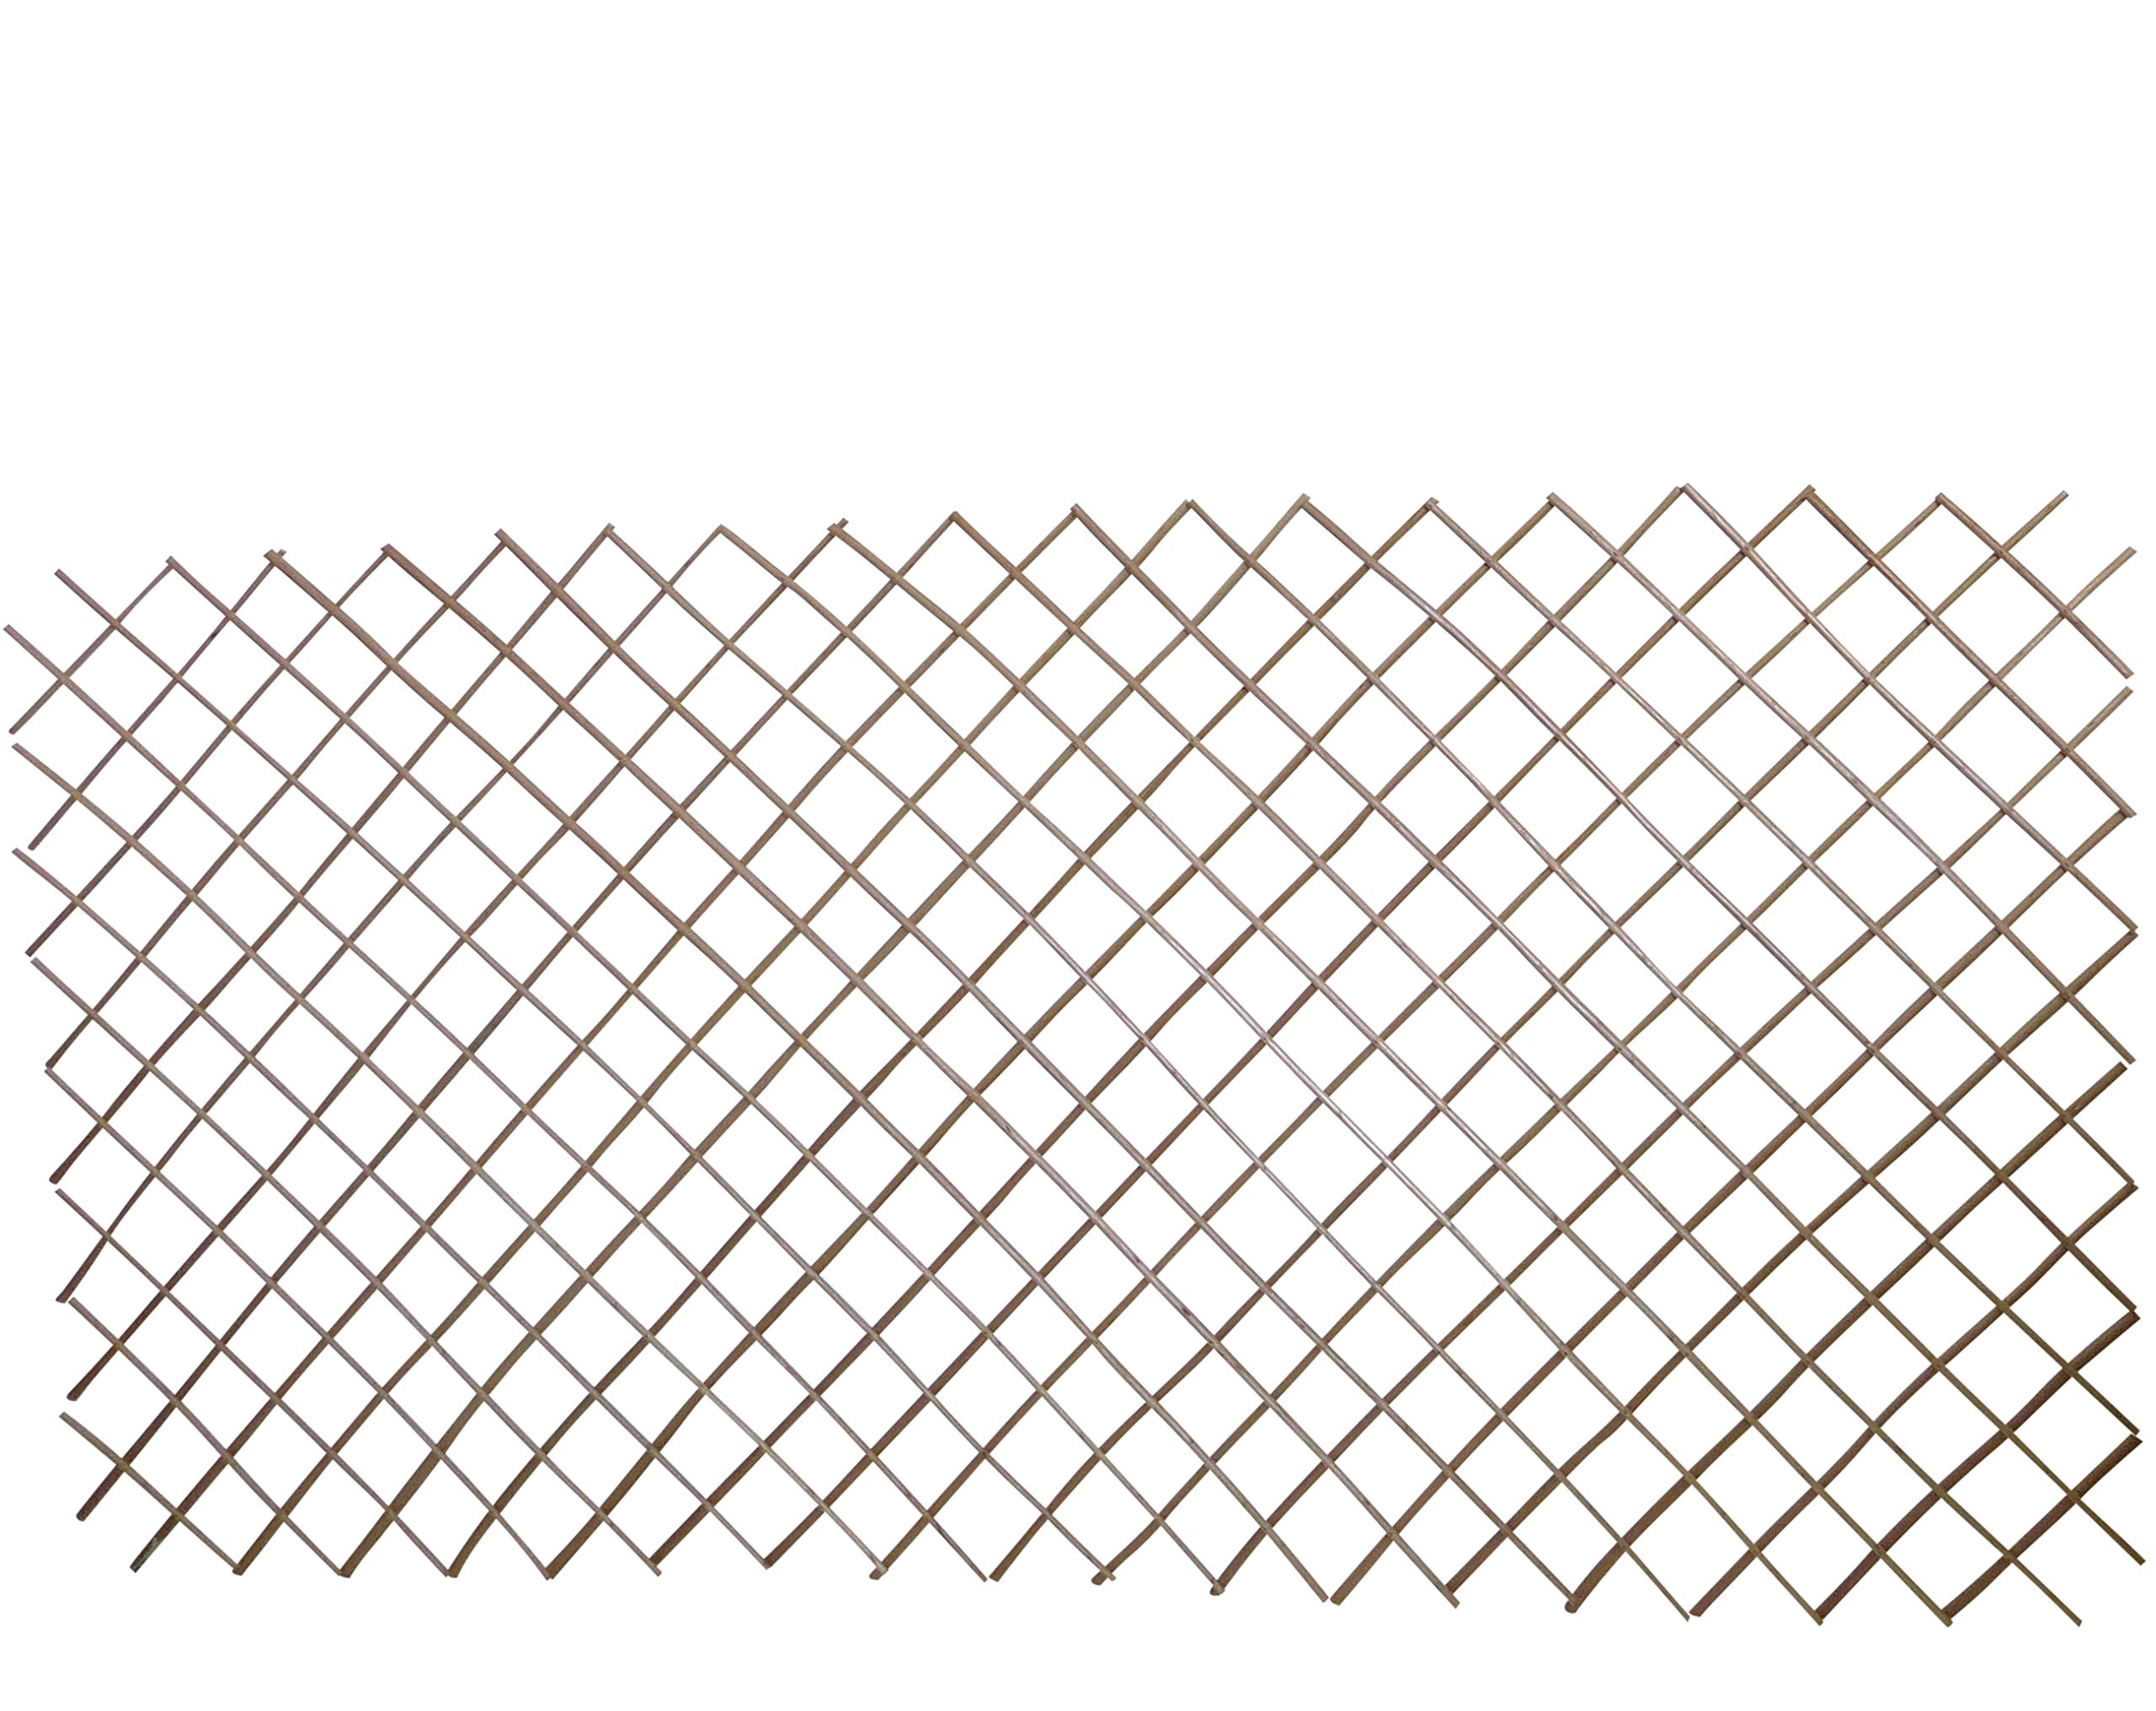 Master Garden Products WCFF-48, Carbonized Barkless Willow Expandable Fence, 48'' H x 72'' W/Pcs, Light Mahogany Color. (4)